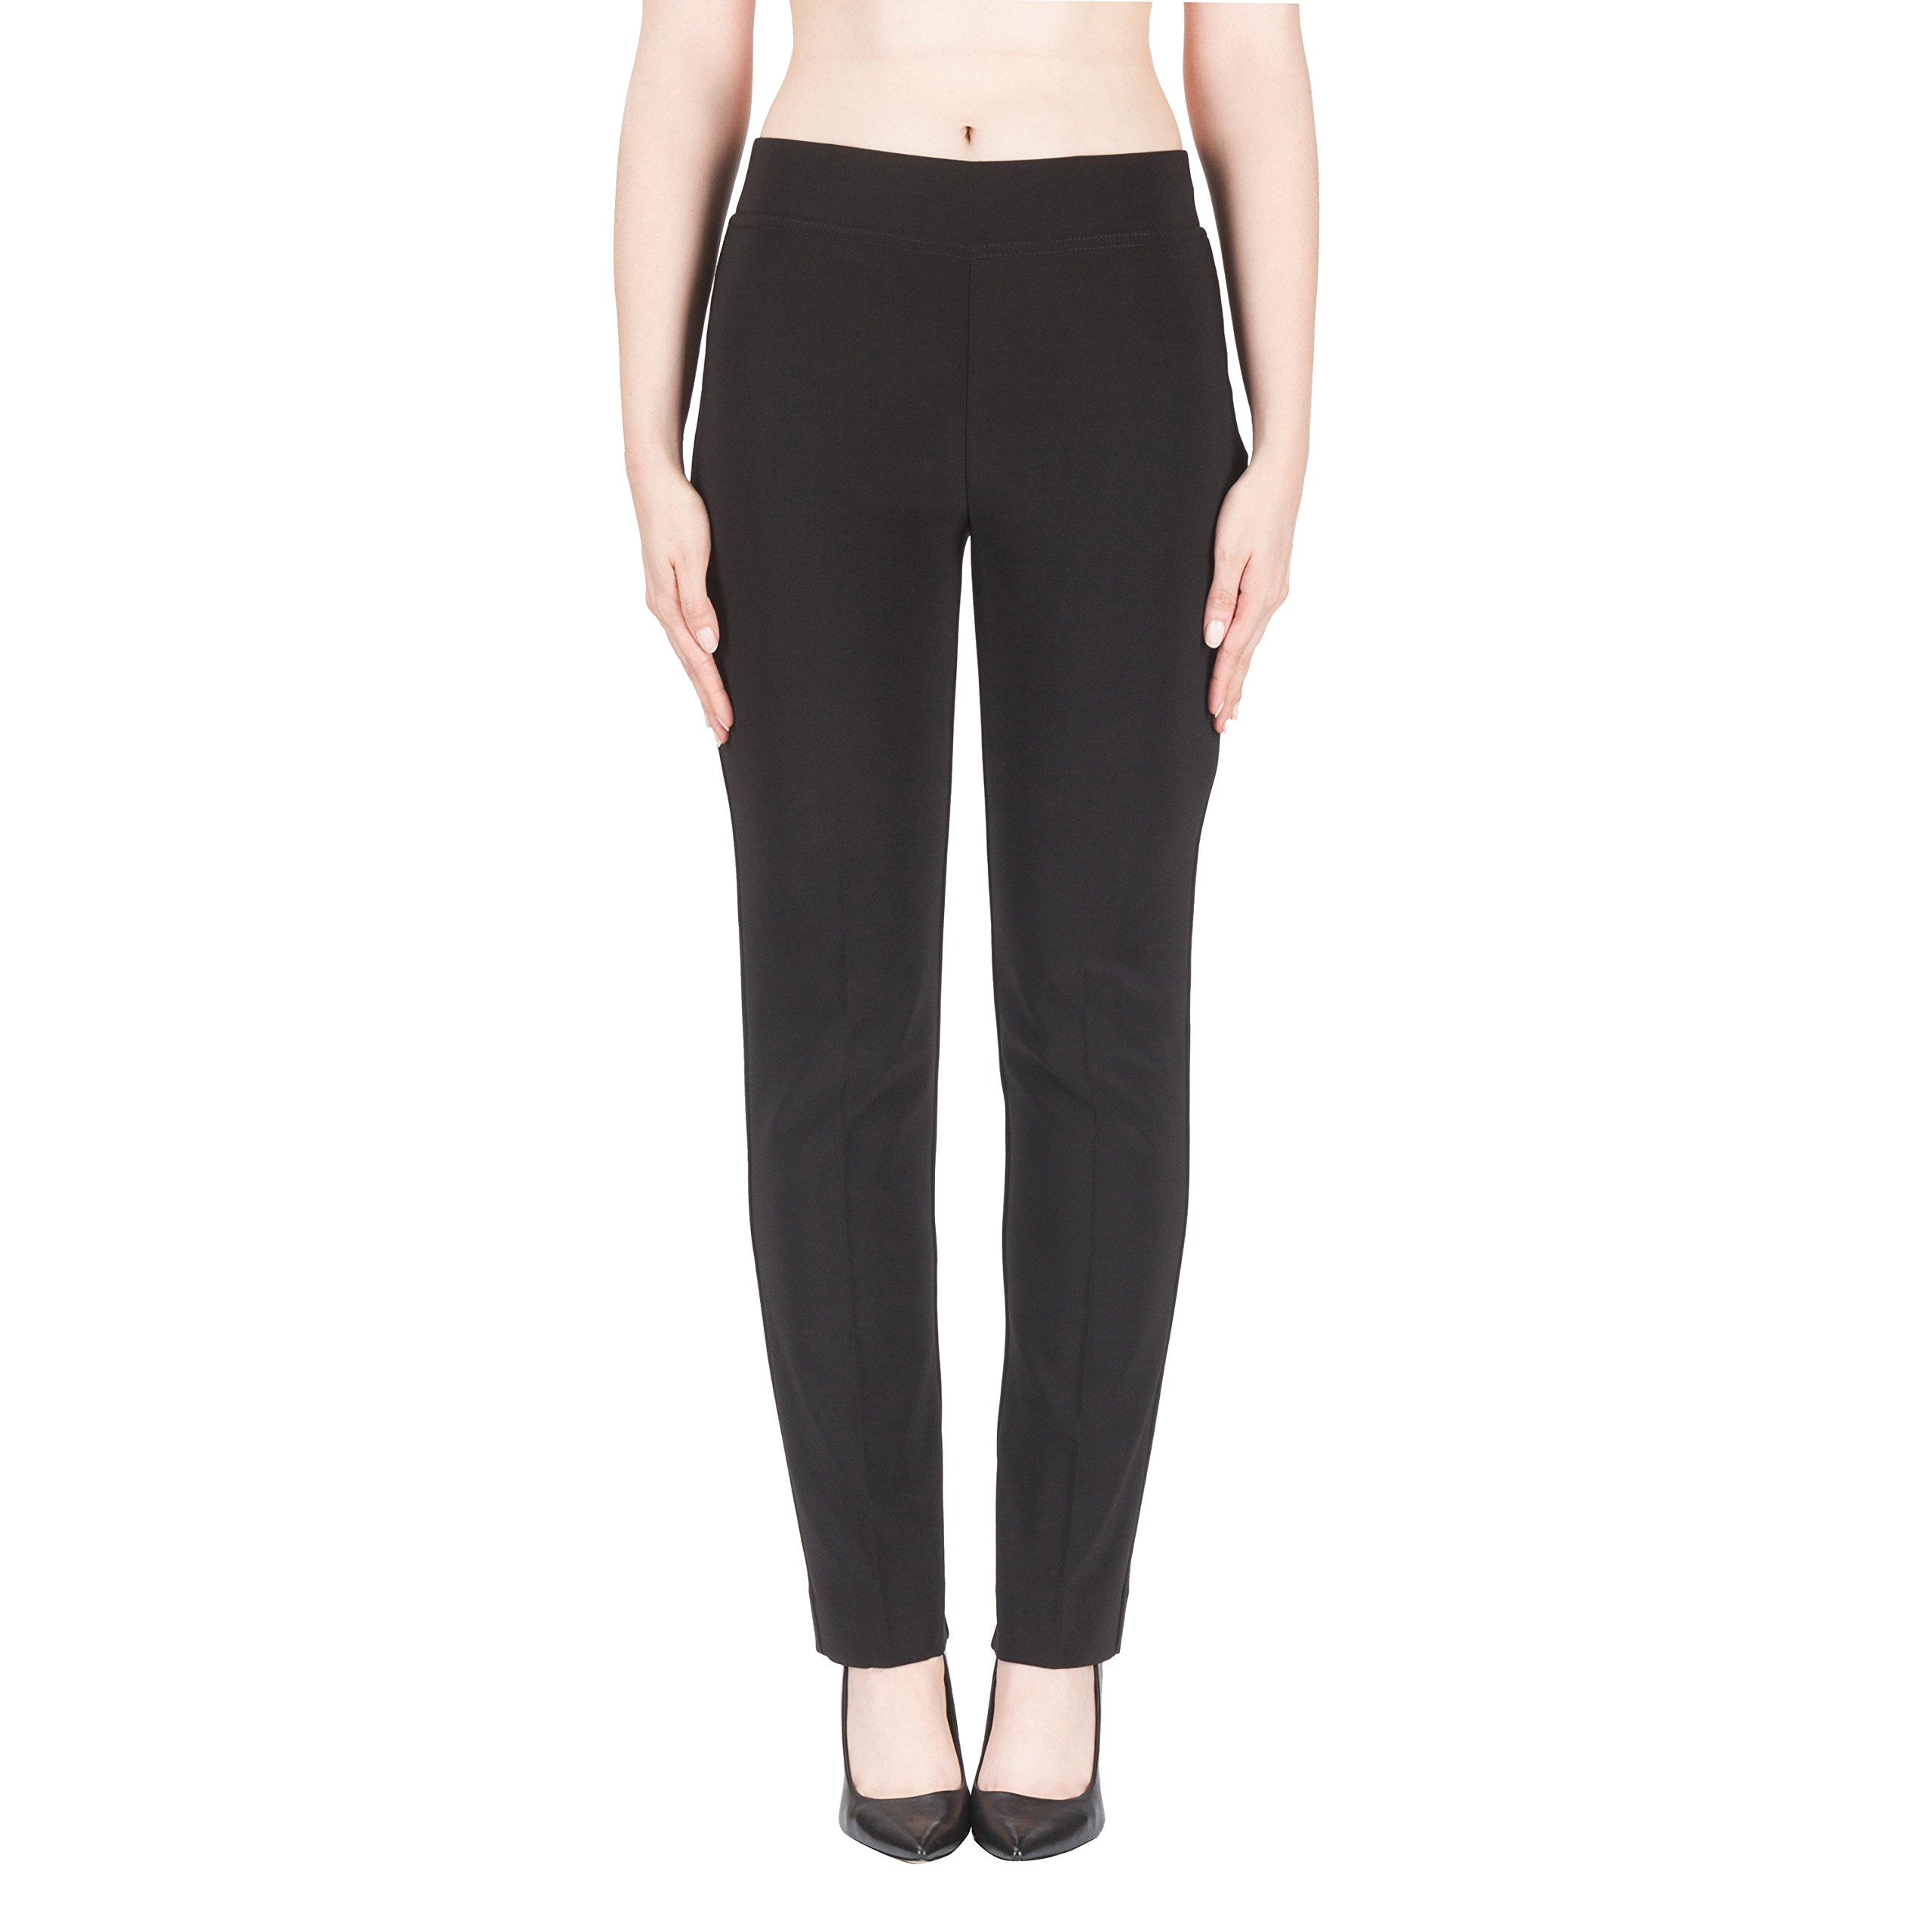 Joseph Ribkoff Black Elastic Waist Pull-on Stretch Pants Style 143105 - Size 4